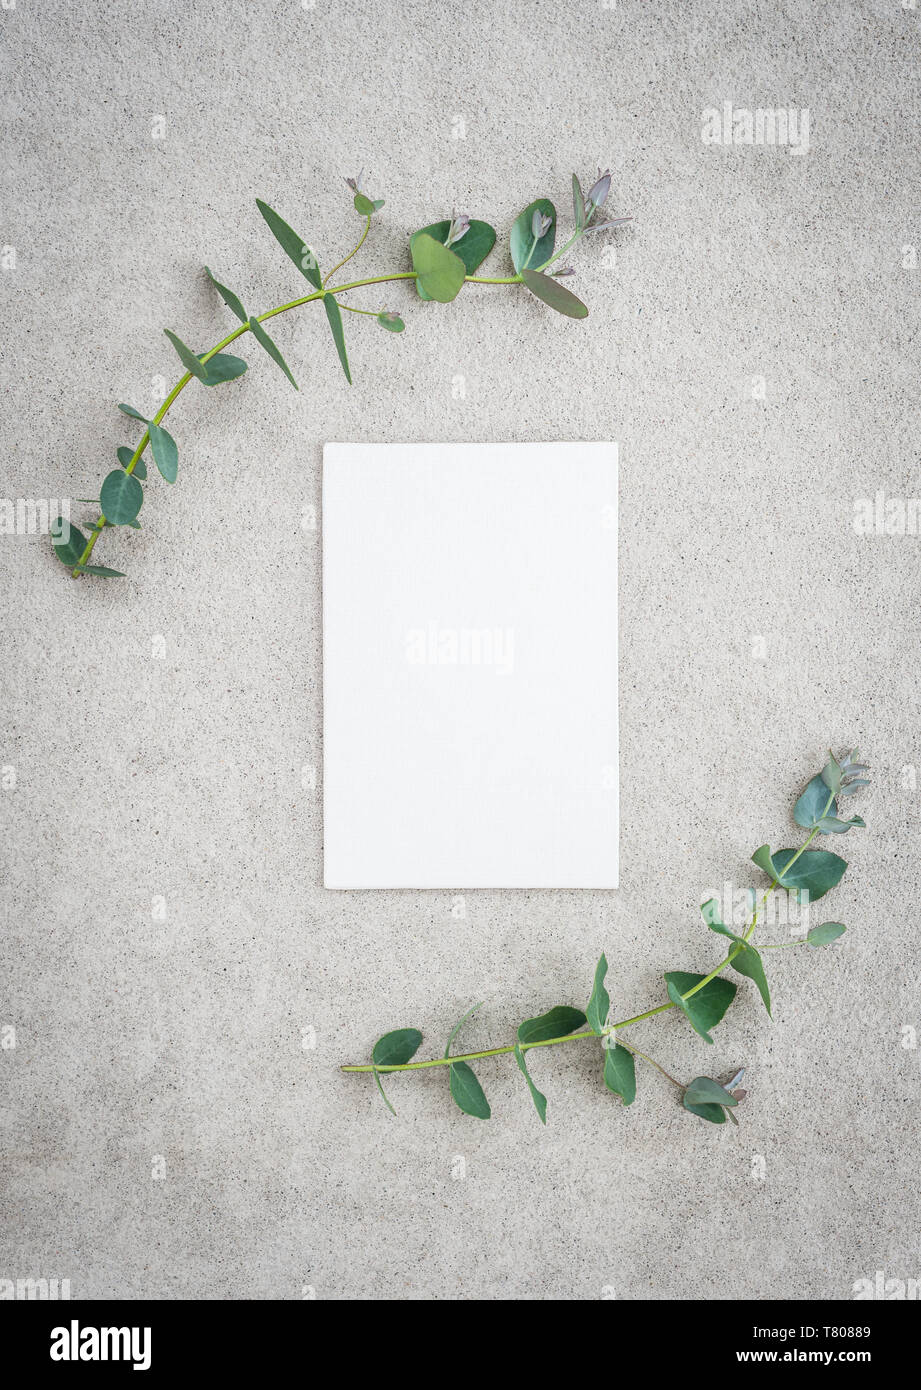 Blank canvas with copy space and eucalyptus branches, on concrete background. Stock Photo